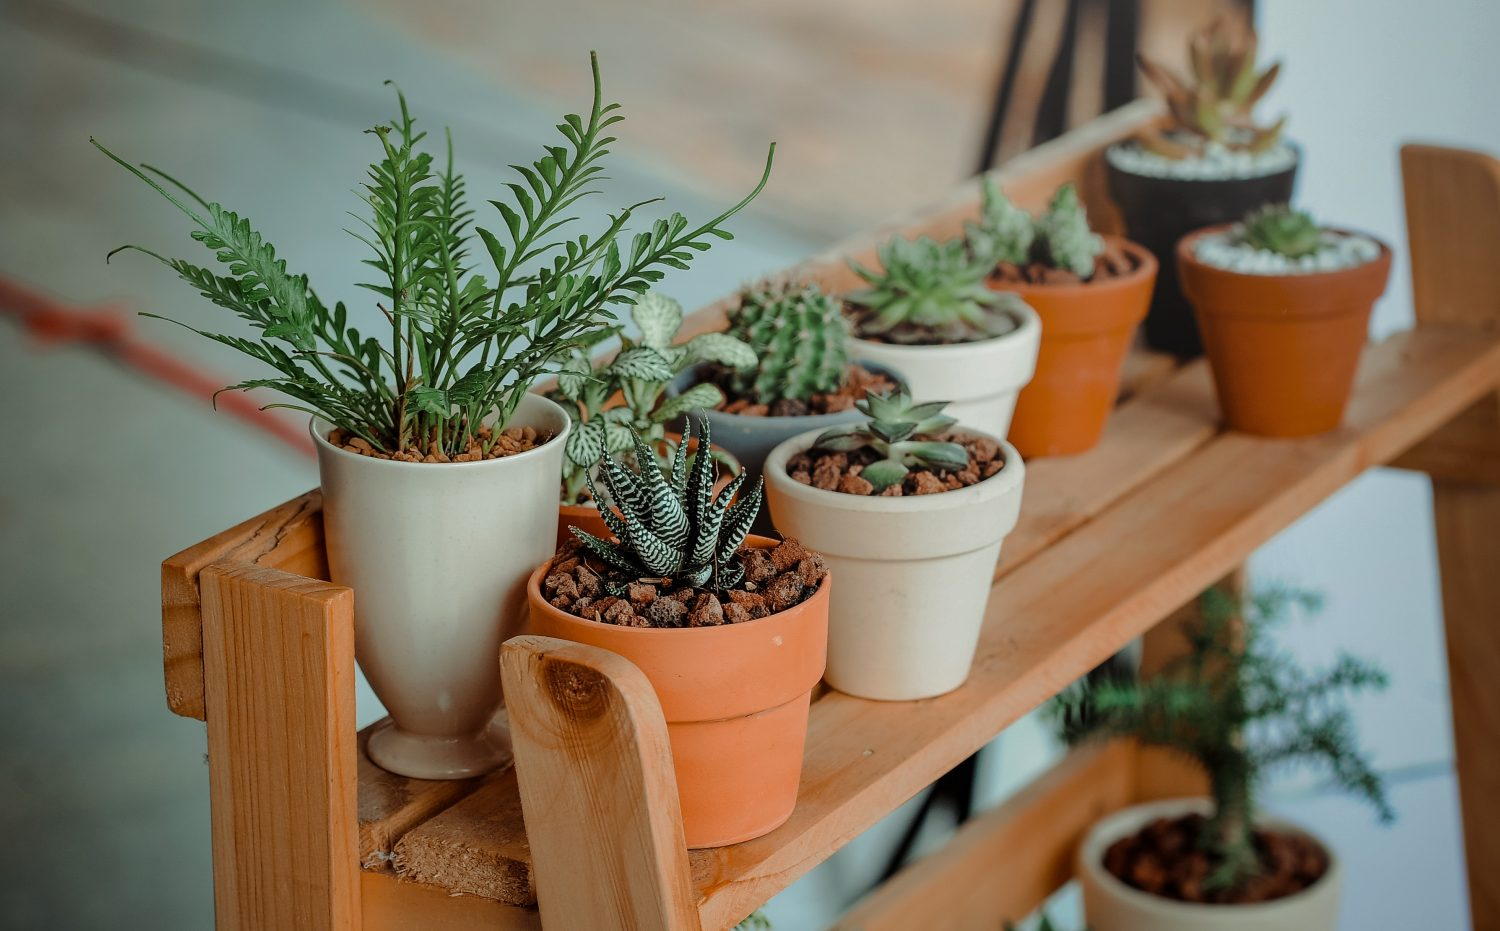 Tips to keep in mind when moving houseplants